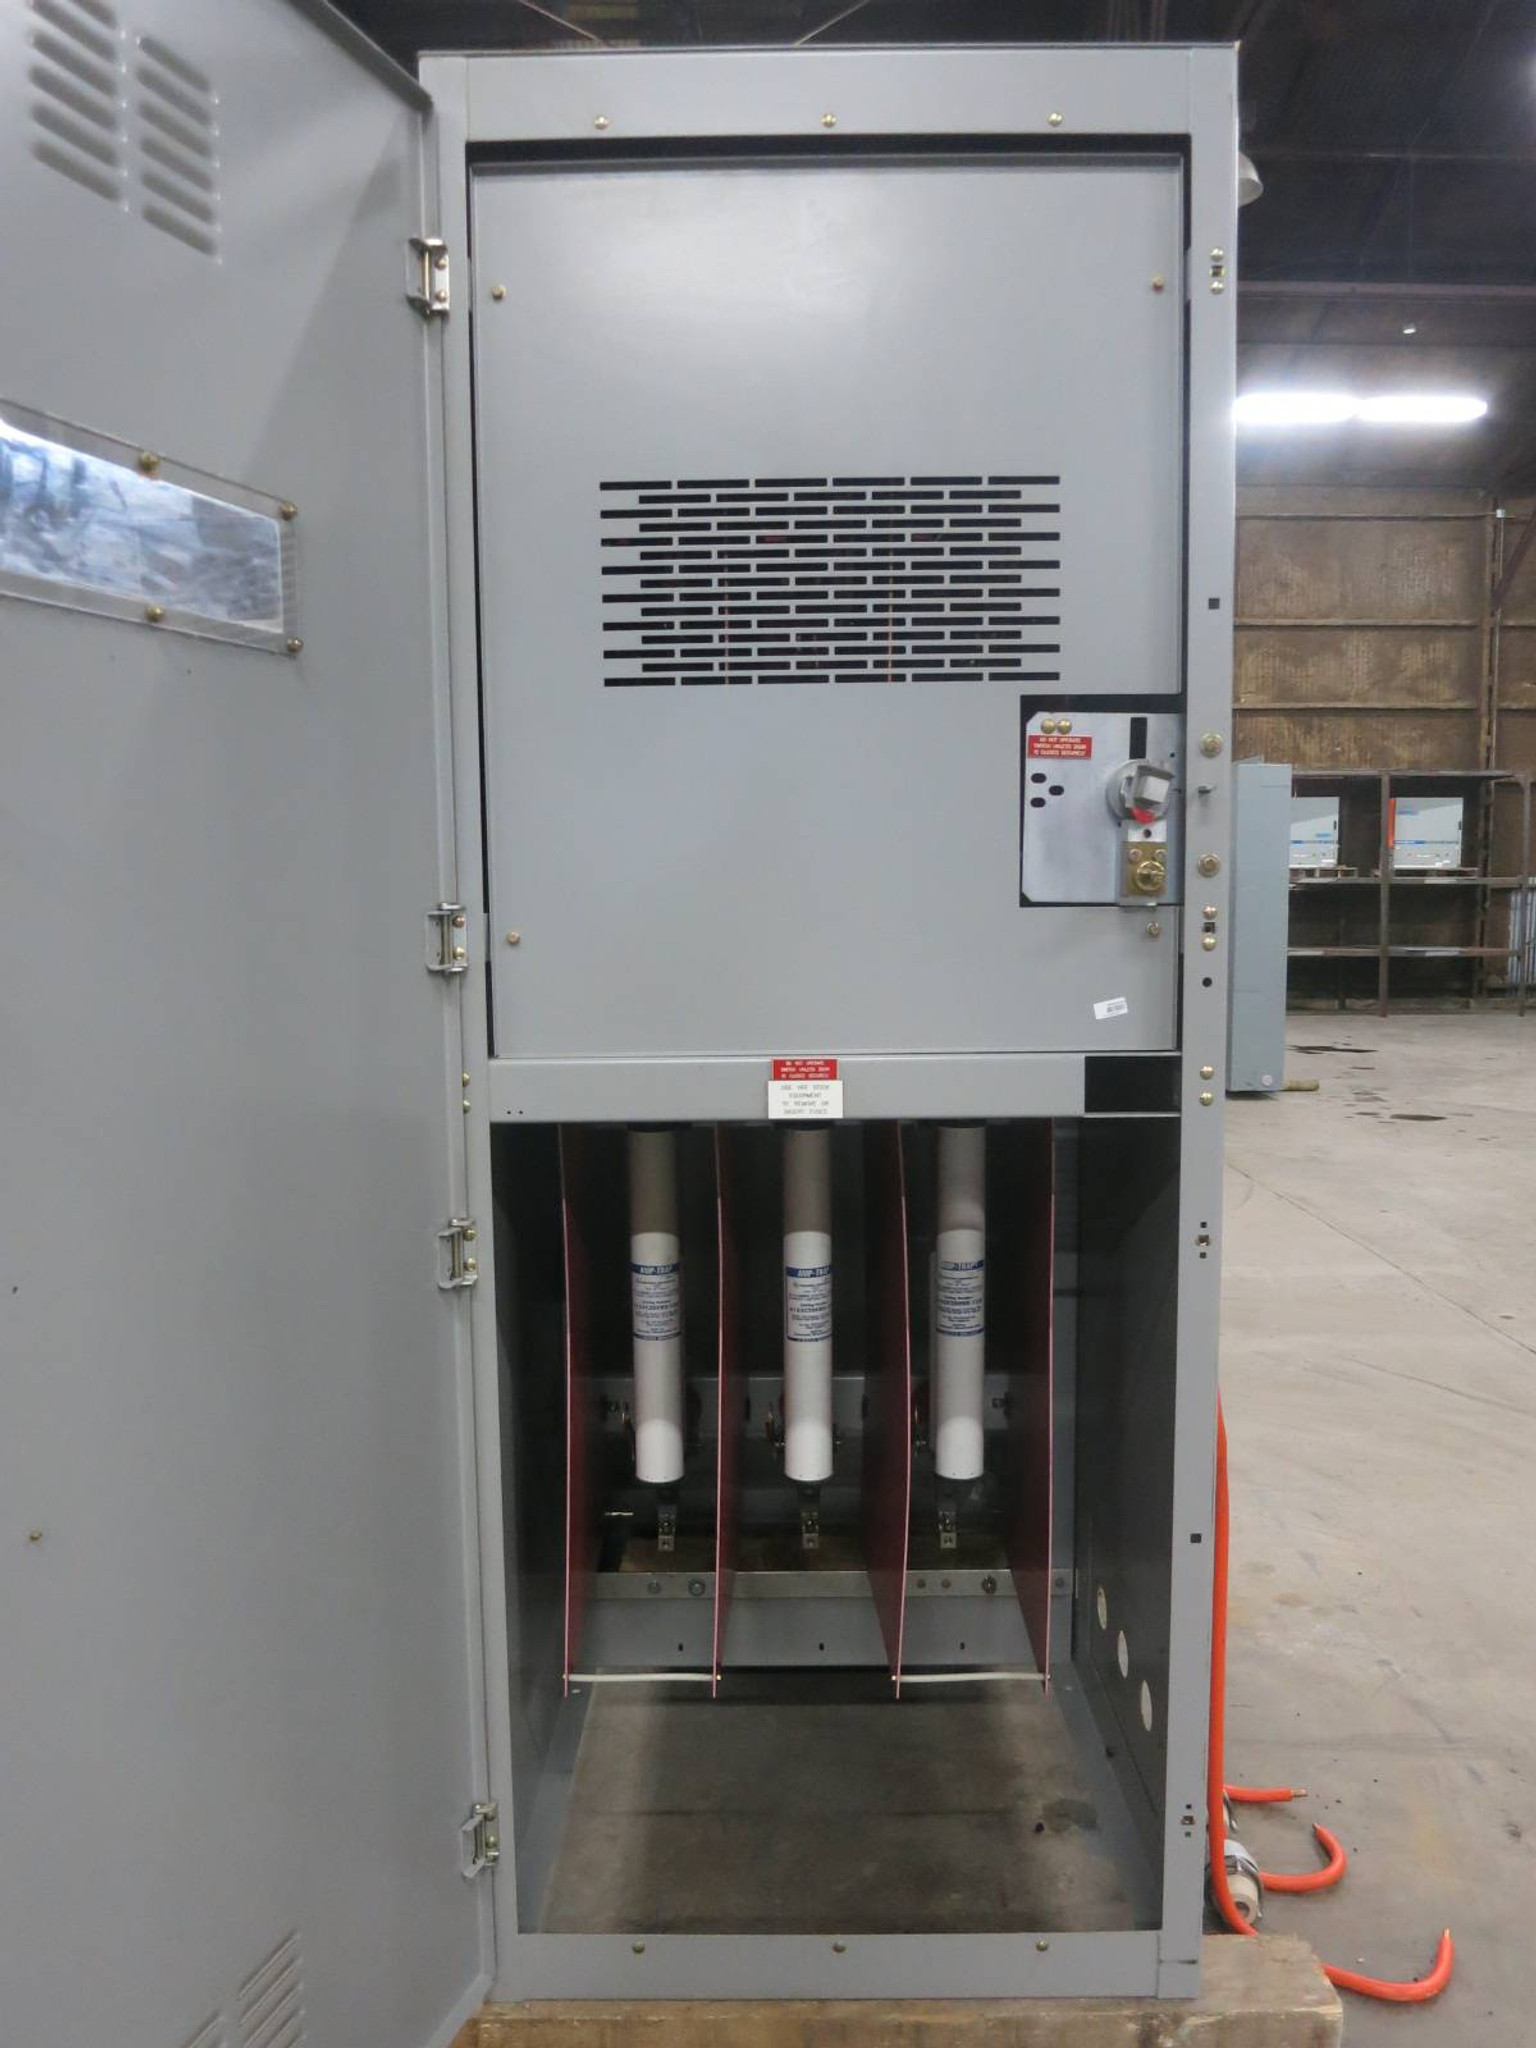 ABB 13800 V High Voltage Switch for Up to 2500 kVA Transformer 13 8 15 kV  HV HVL (PM2808-1)